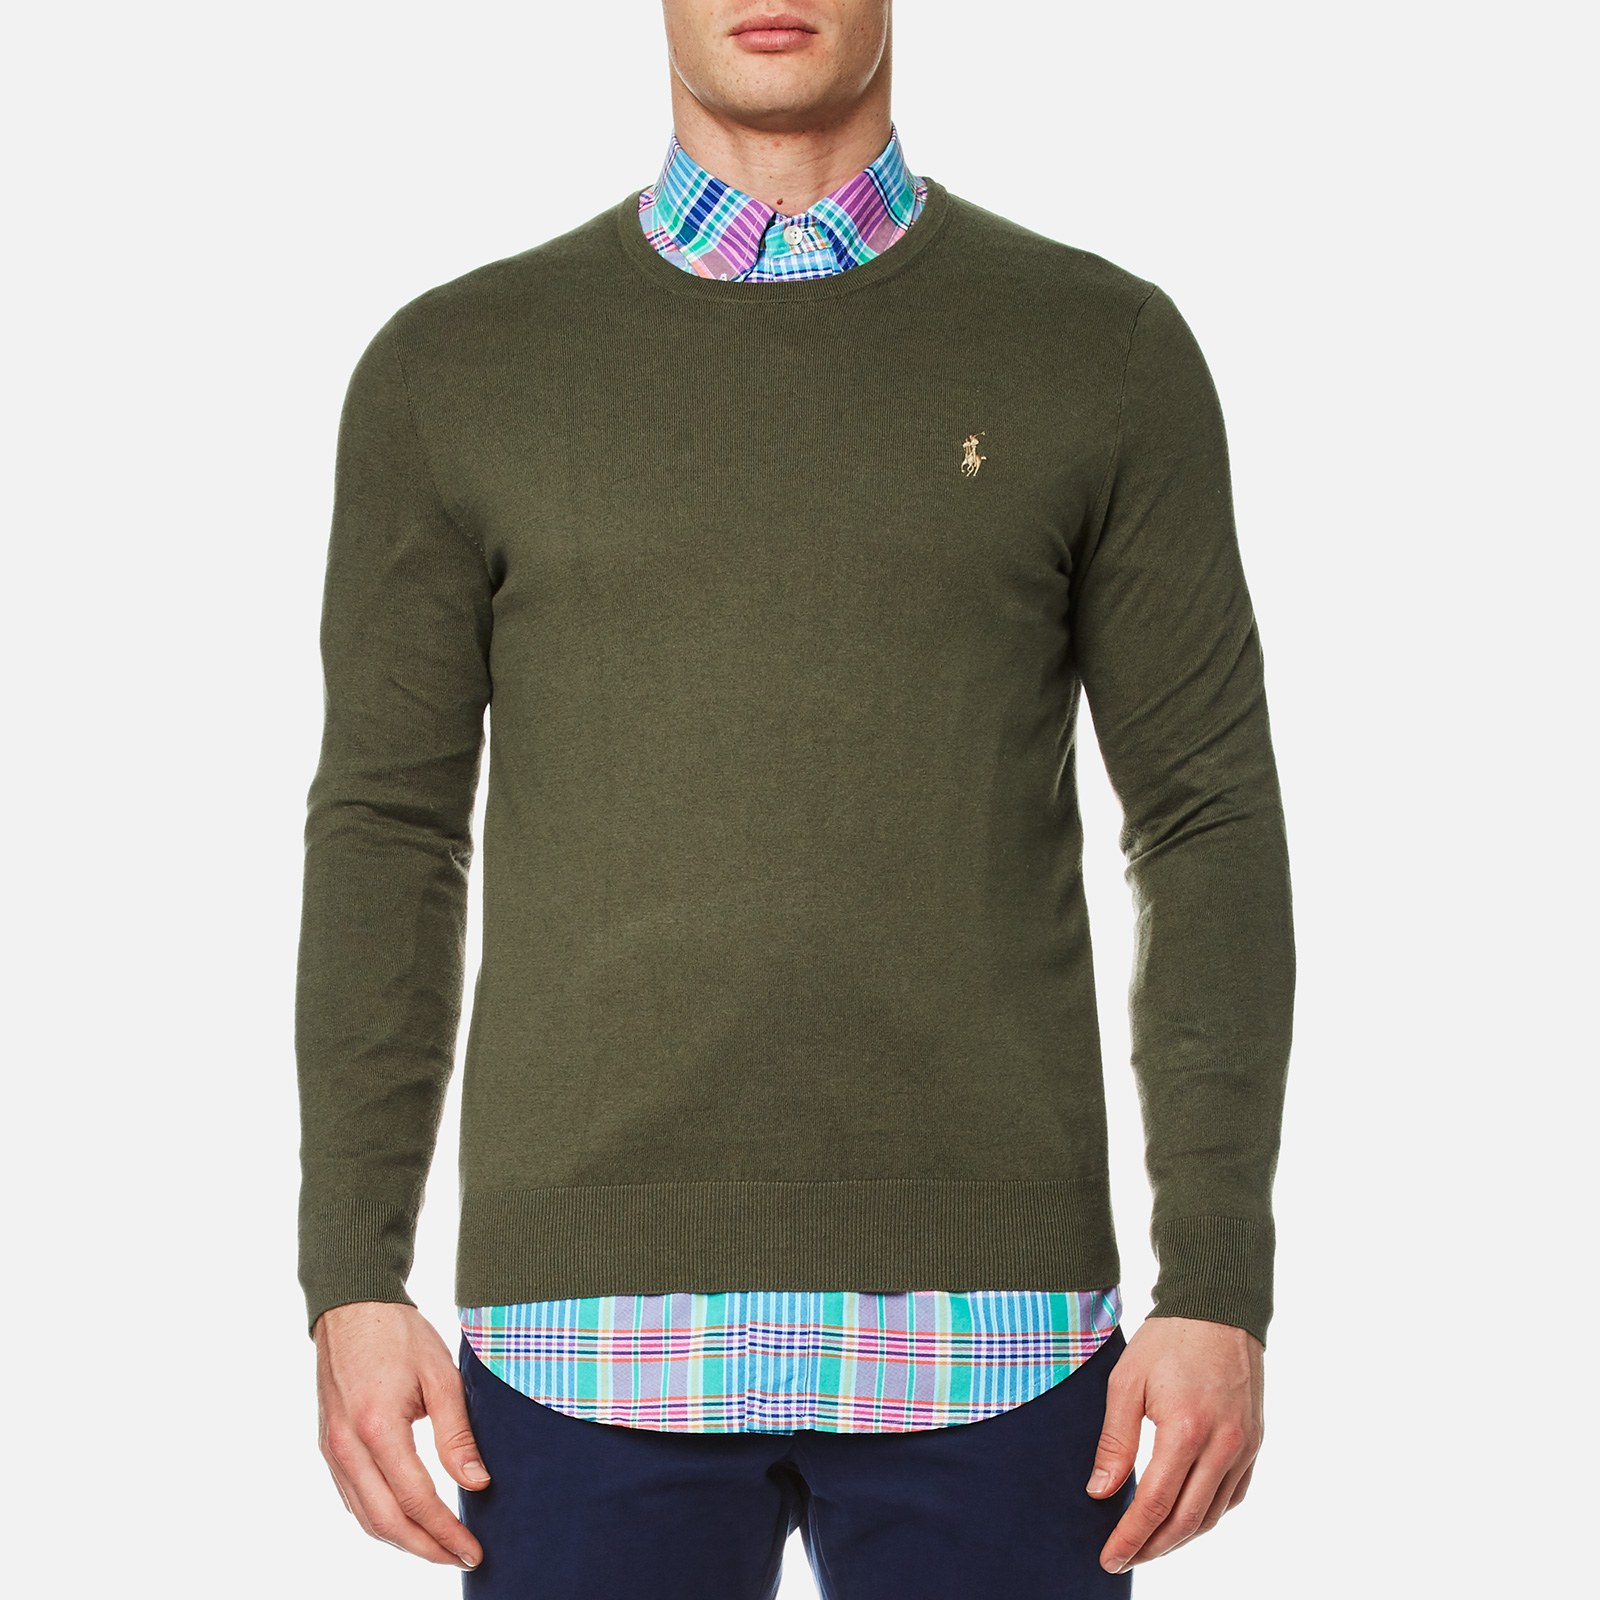 ffc6cc19a Polo Ralph Lauren Men's Crew Neck Cotton Blend Knit Jumper - Moss Bark -  Free UK Delivery over £50